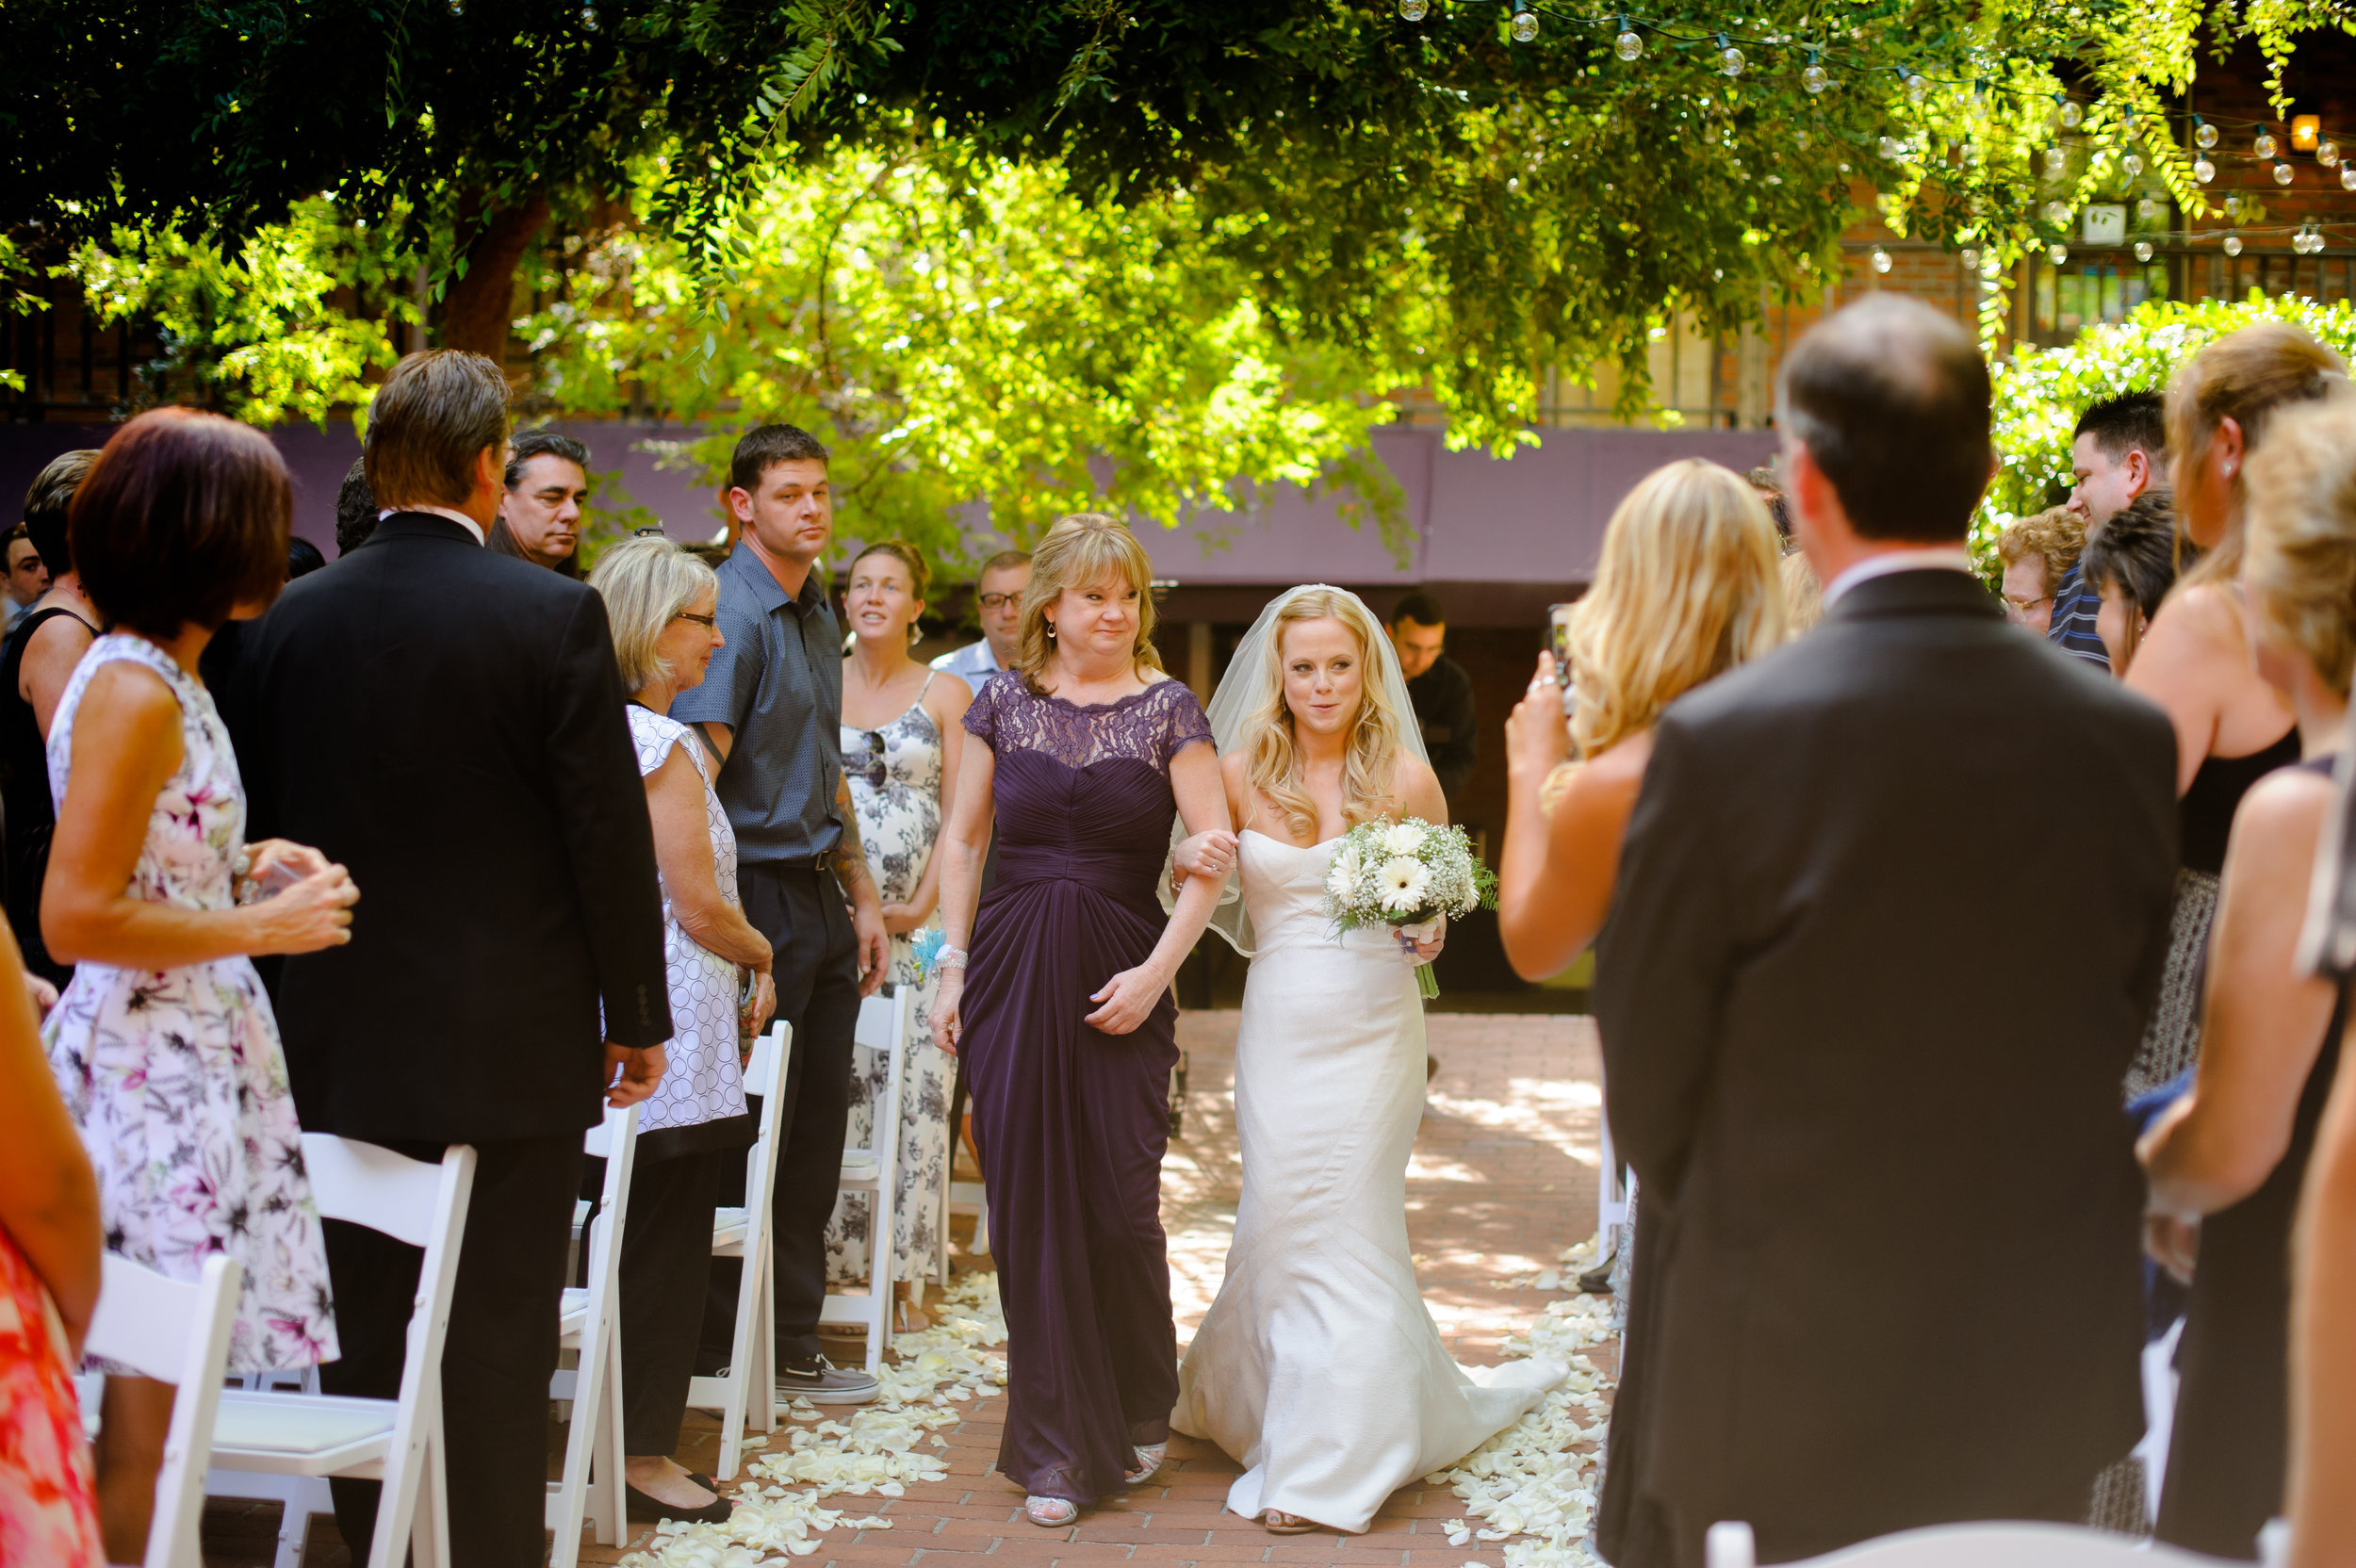 jenelle-brian-001-courtyard-d'oro-old-sacramento-wedding-photographer-katherine-nicole-photography020.JPG